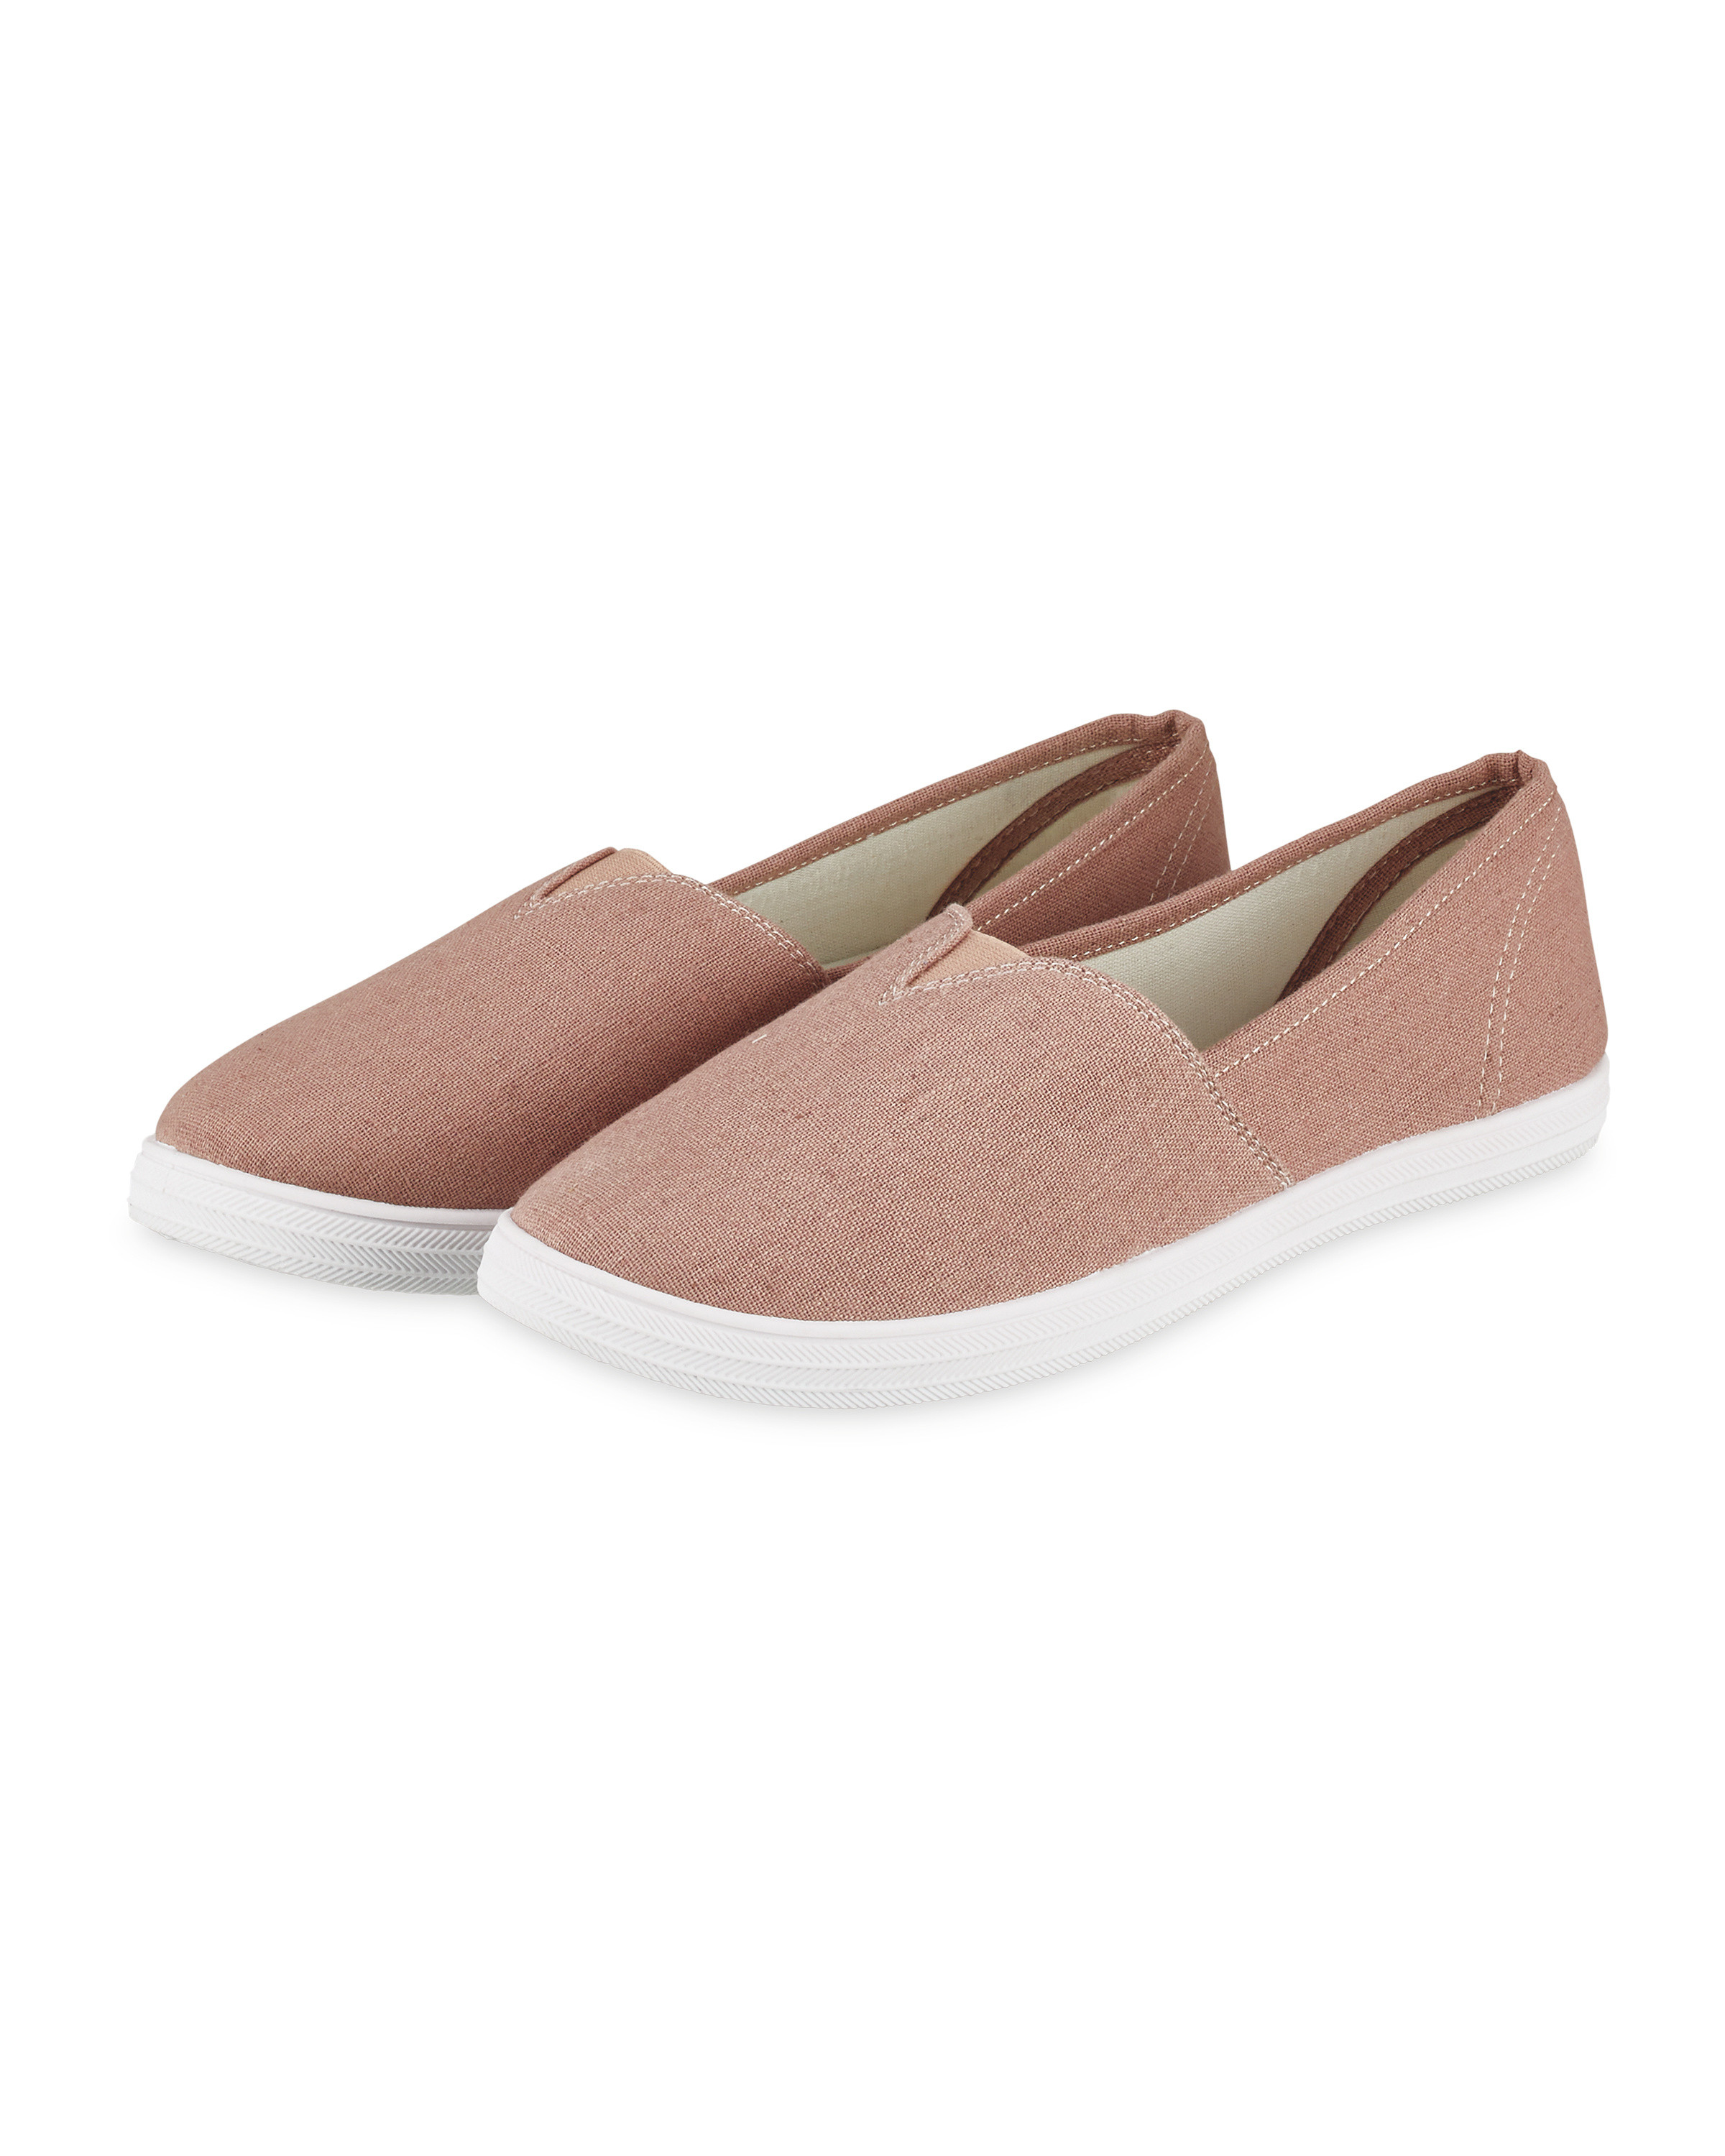 Rose Ladies' Casual Pumps